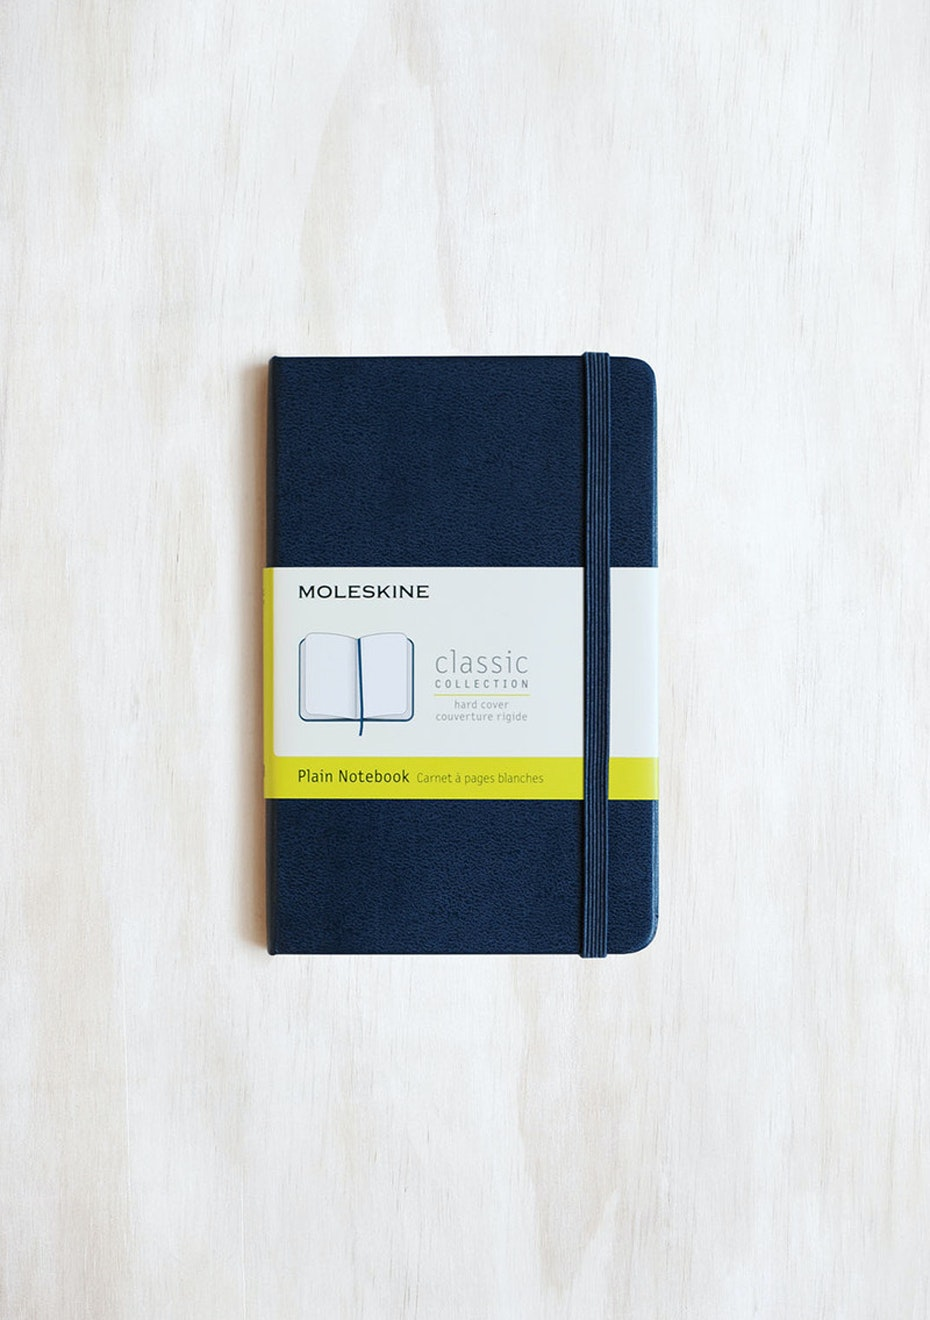 Moleskine - Classic Hard Cover Notebook - Plain - Pocket - Sapphire Blue